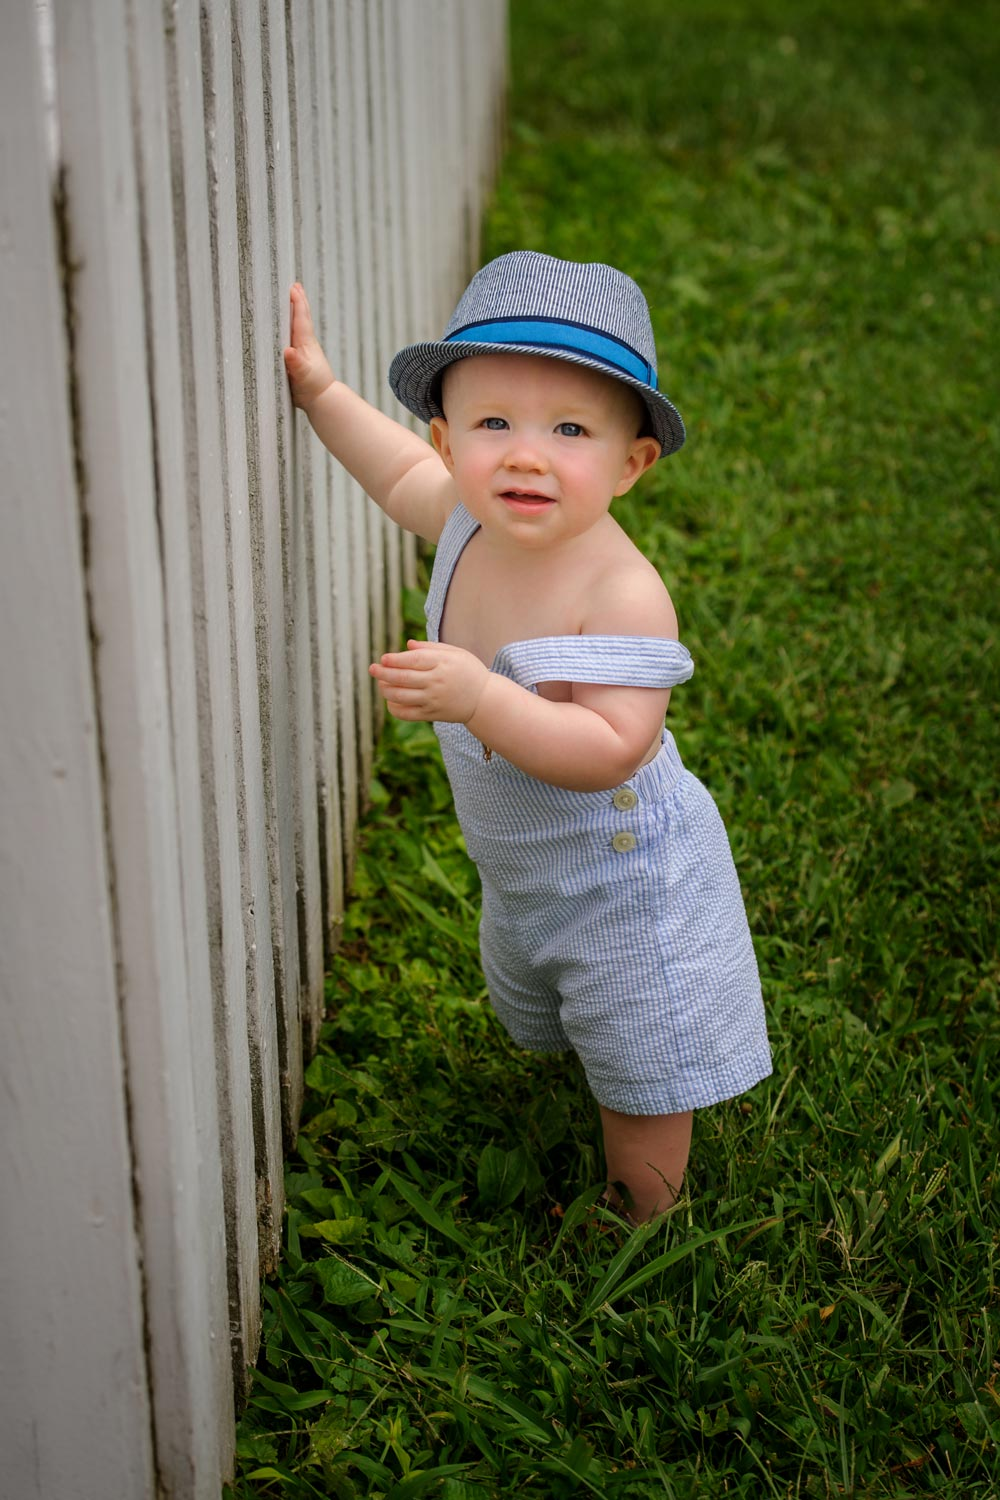 children_photography_Lexington_ky_studio_walz012.jpg